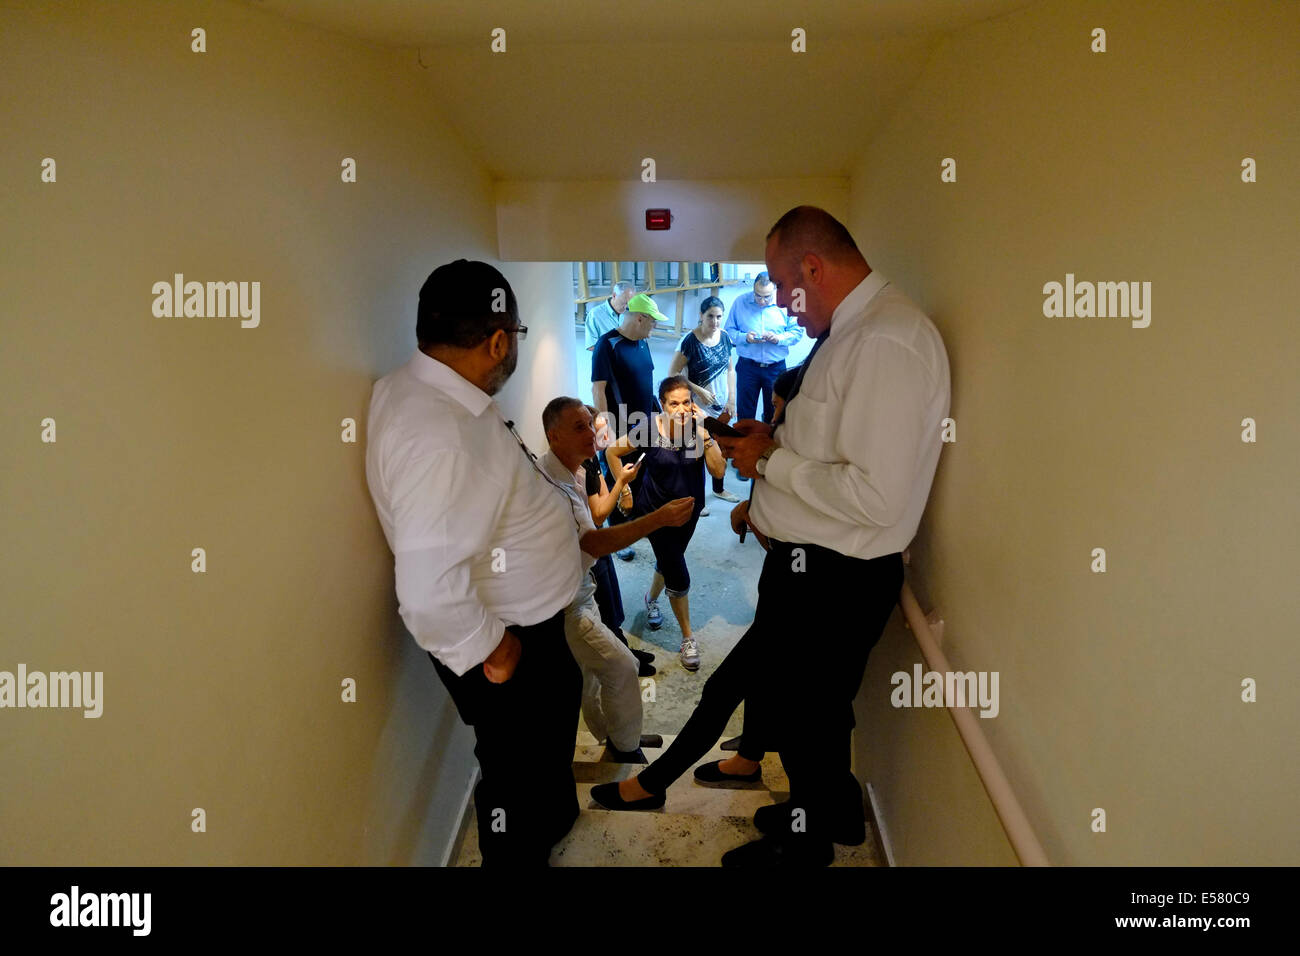 Israeli civilians inside a bomb shelter during rocket attack from Gaza strip in the coastal city of Ashkelon in - Stock Image